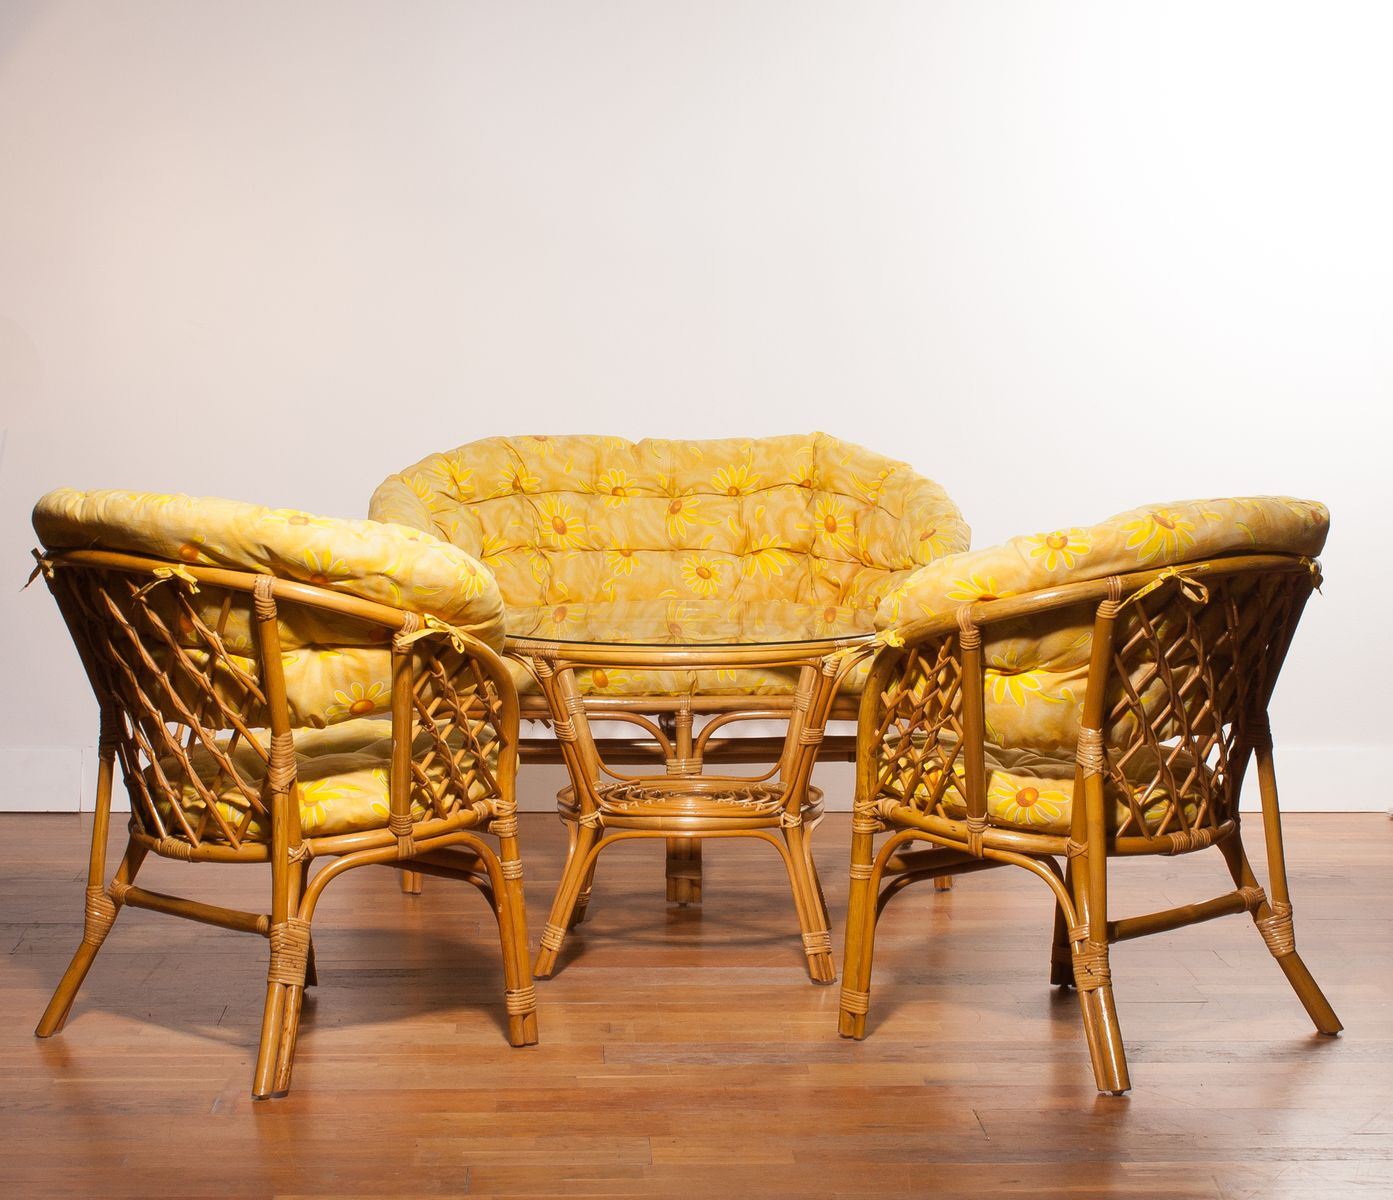 Bamboo and Rattan Garden Set, 1970s for sale at Pamono